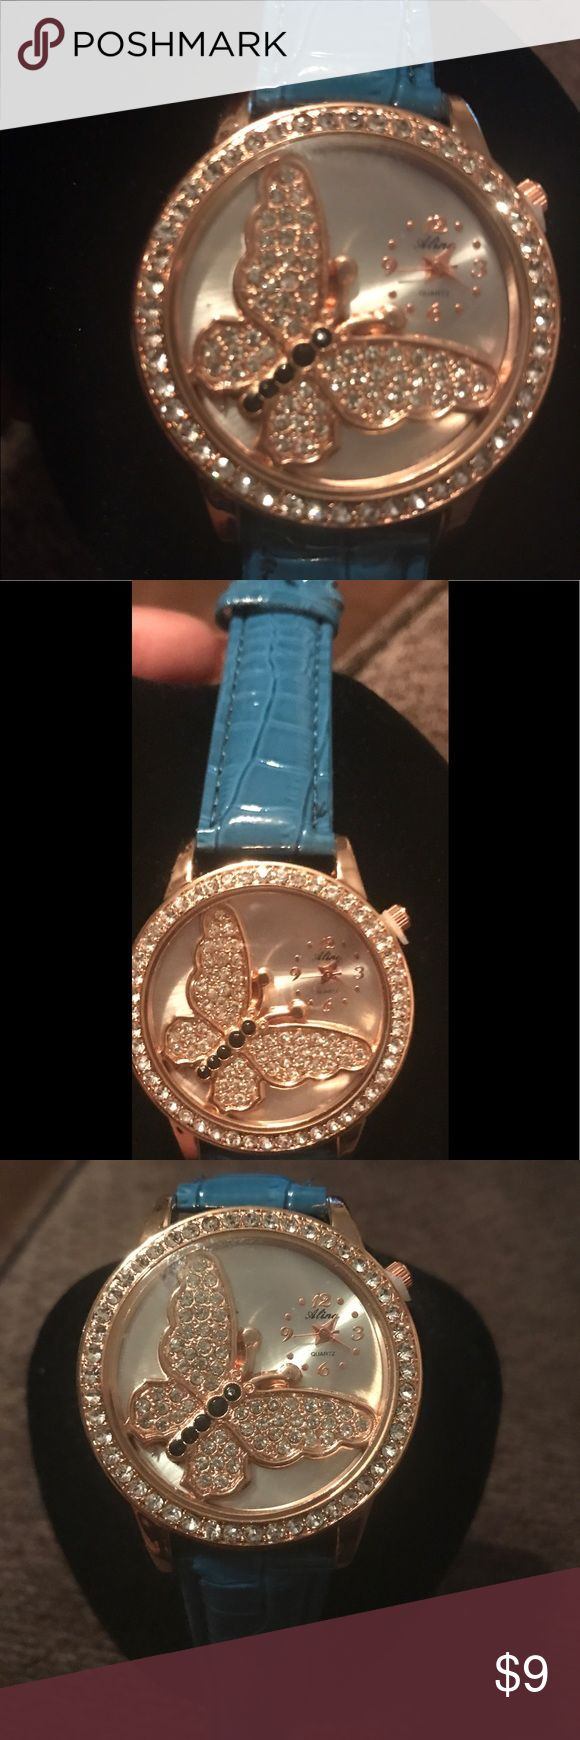 ❤️Fashion Woman Blue Watch with Gold Butterfly 🦋 NWOT!  Cute adorable Fashion Woman Blue watch with Gold Design Butterfly inside,  time is in the upper right corner, Very cute and stylish, Never Worn, ONE SIZE FITS ALL! Accessories Watches